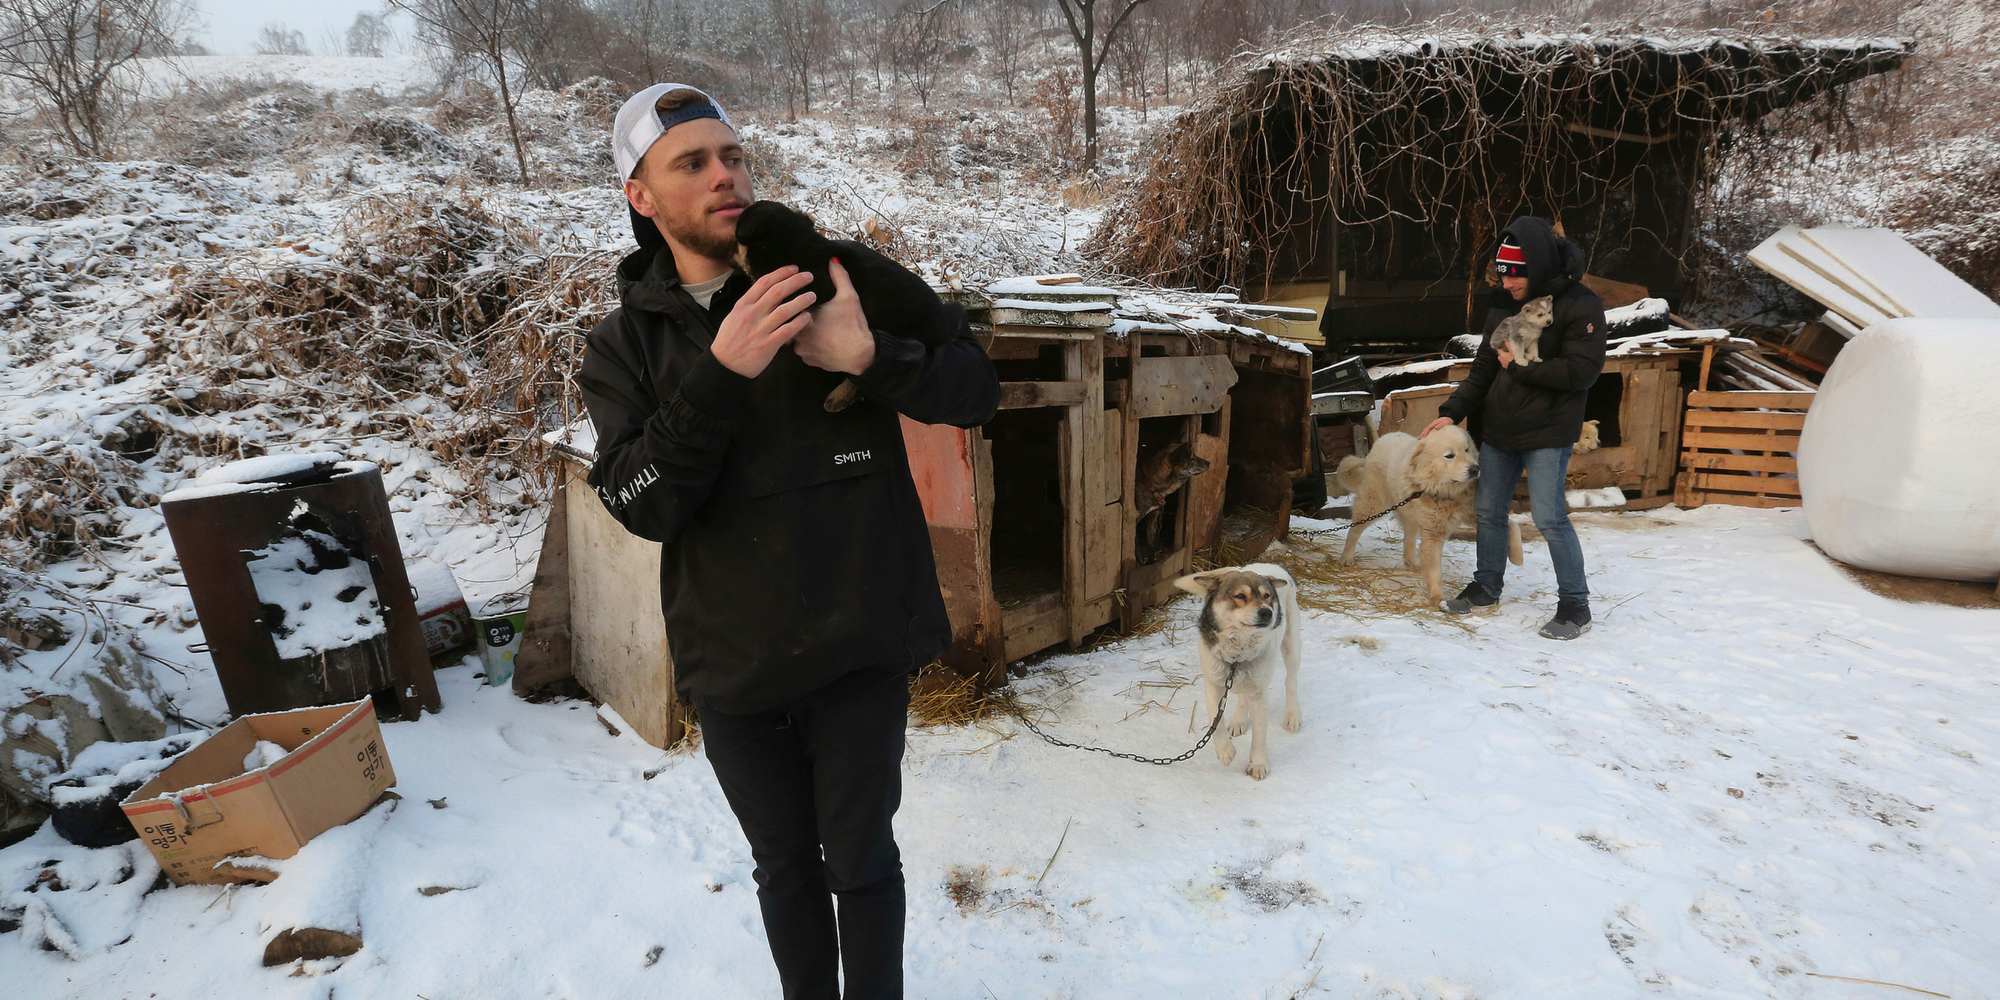 Olympian visits South Korean dog farm and tells owners: 'Dogs are friends not food'